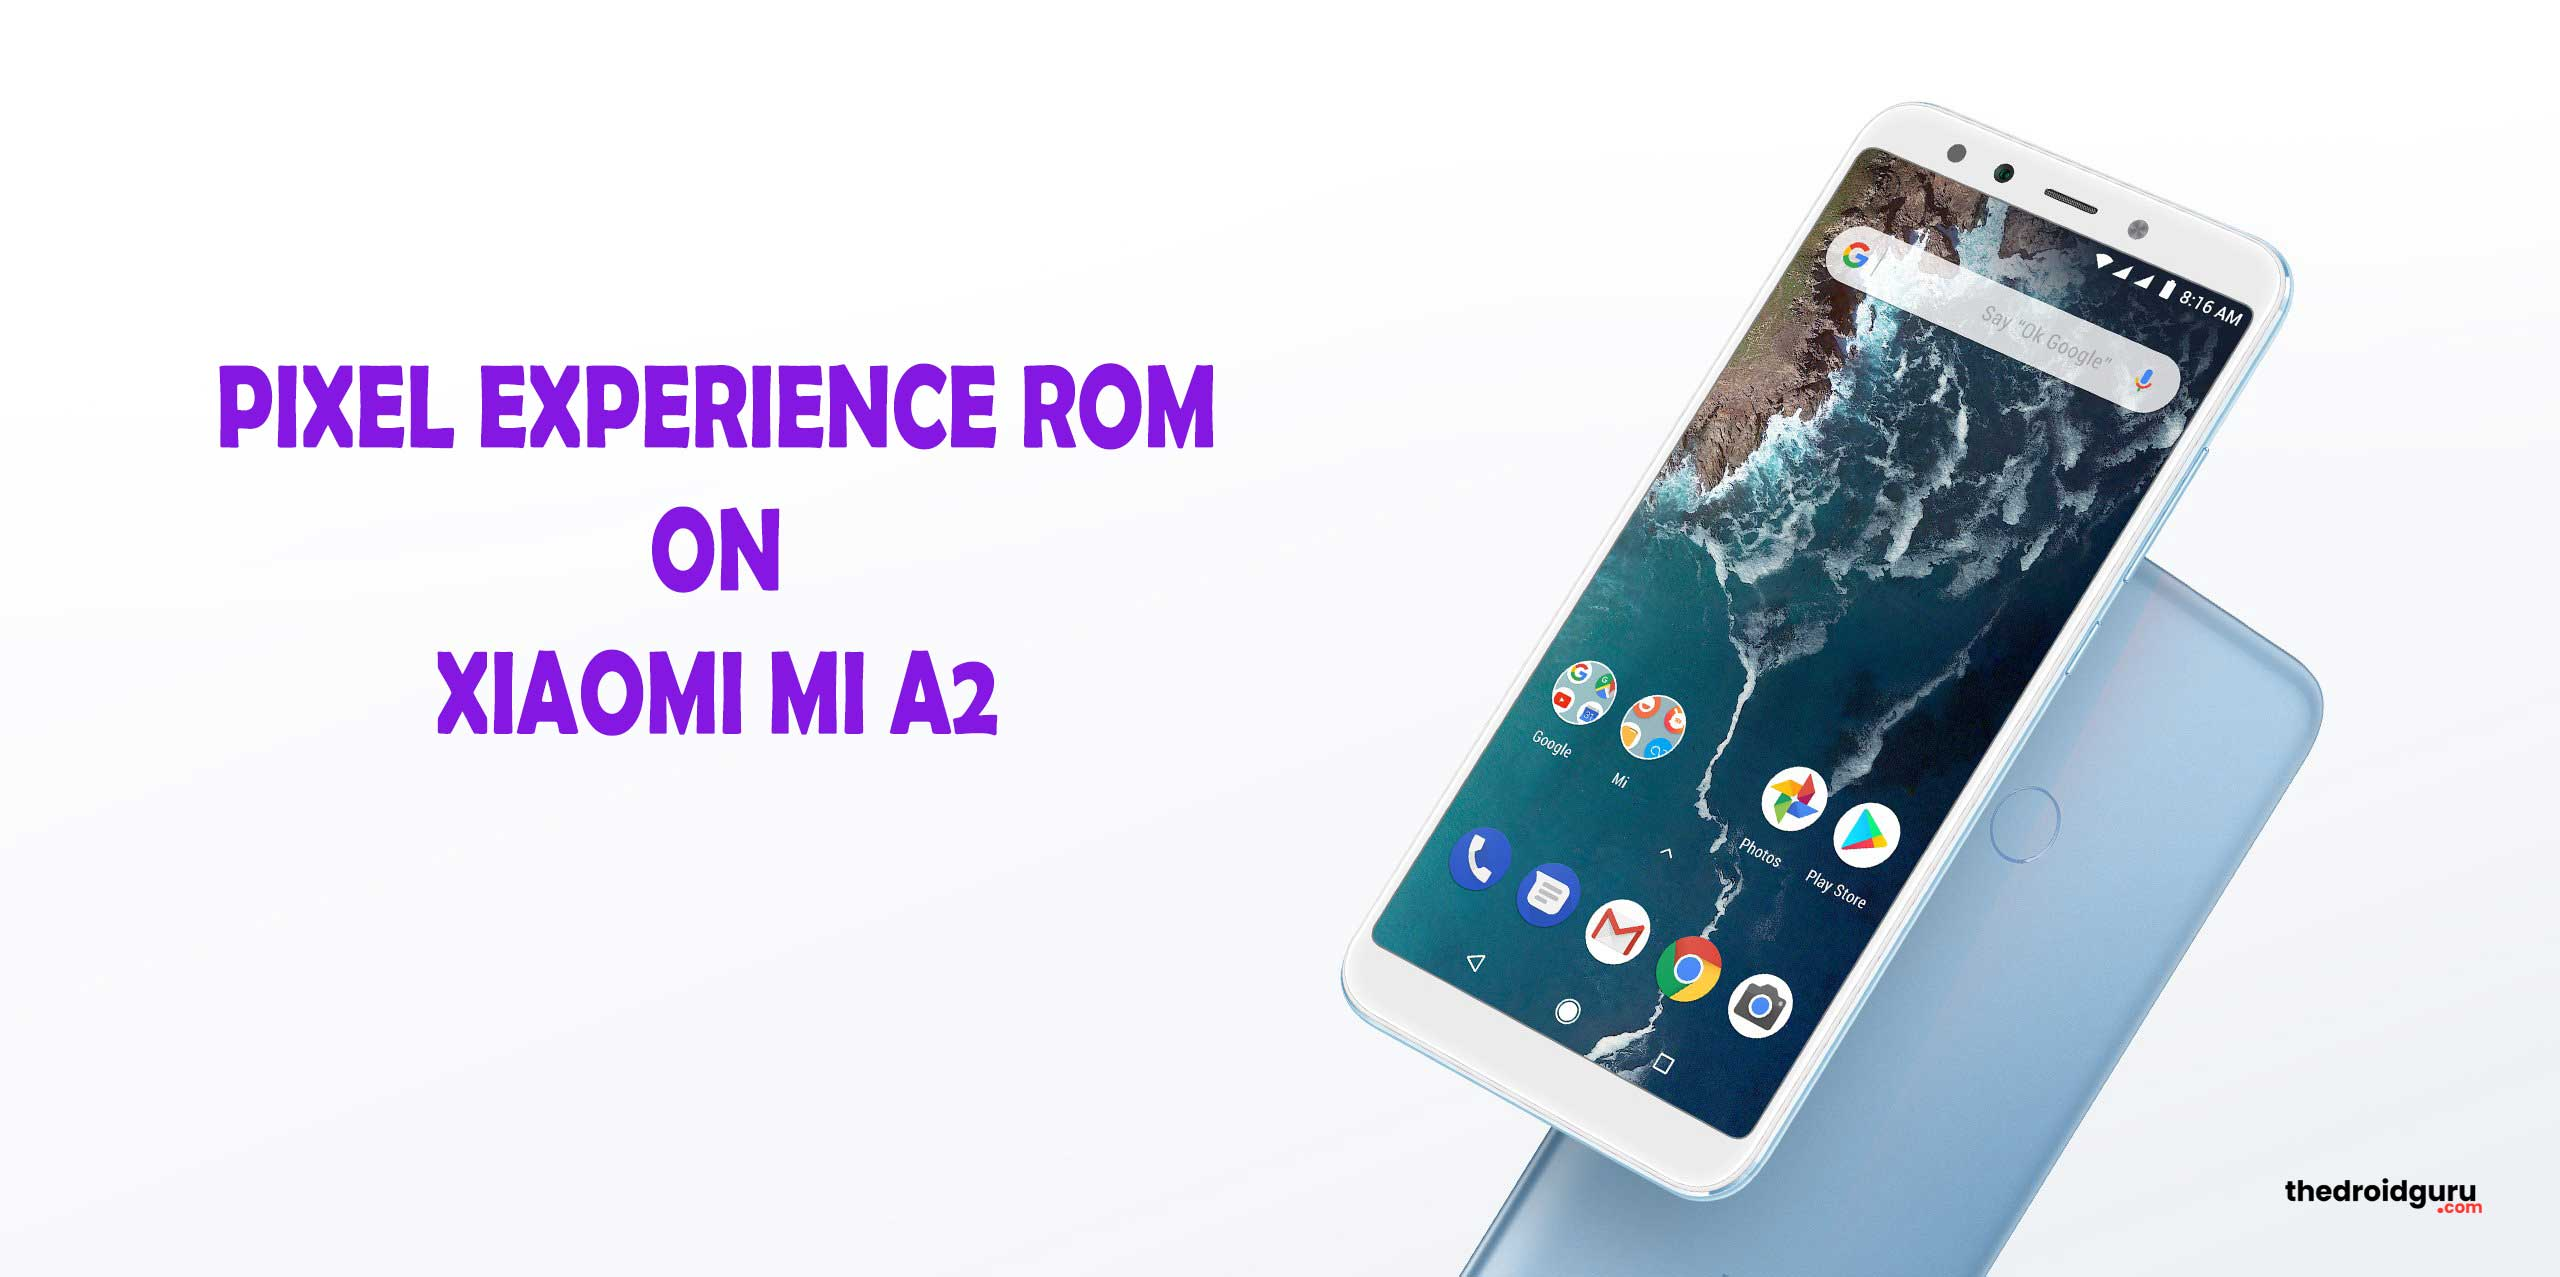 Download and Install Pixel Experience ROM on Mi A2 based on Android